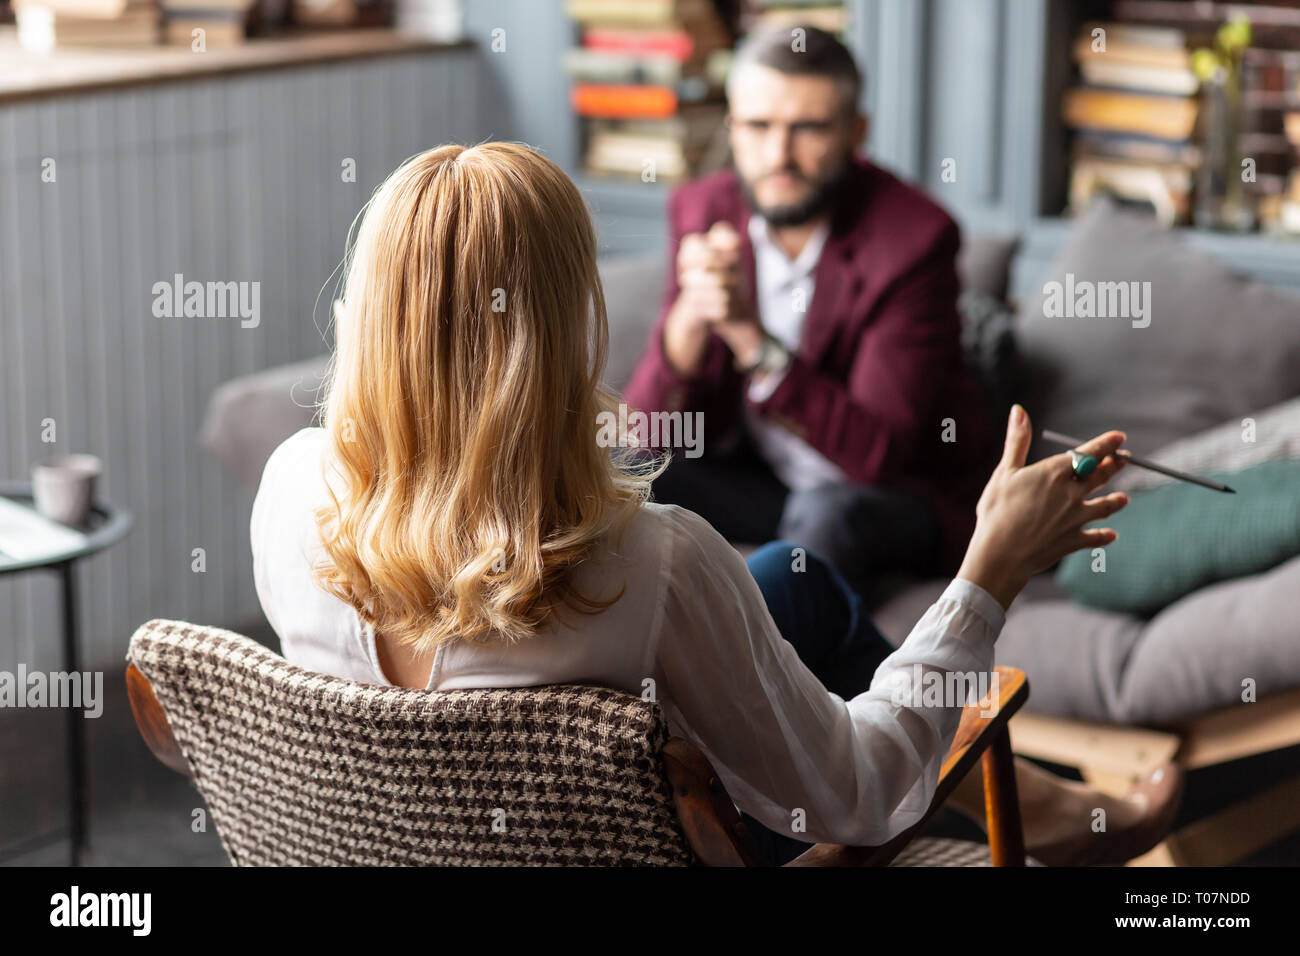 Therapist wearing white blouse giving personal assistance to businessman - Stock Image